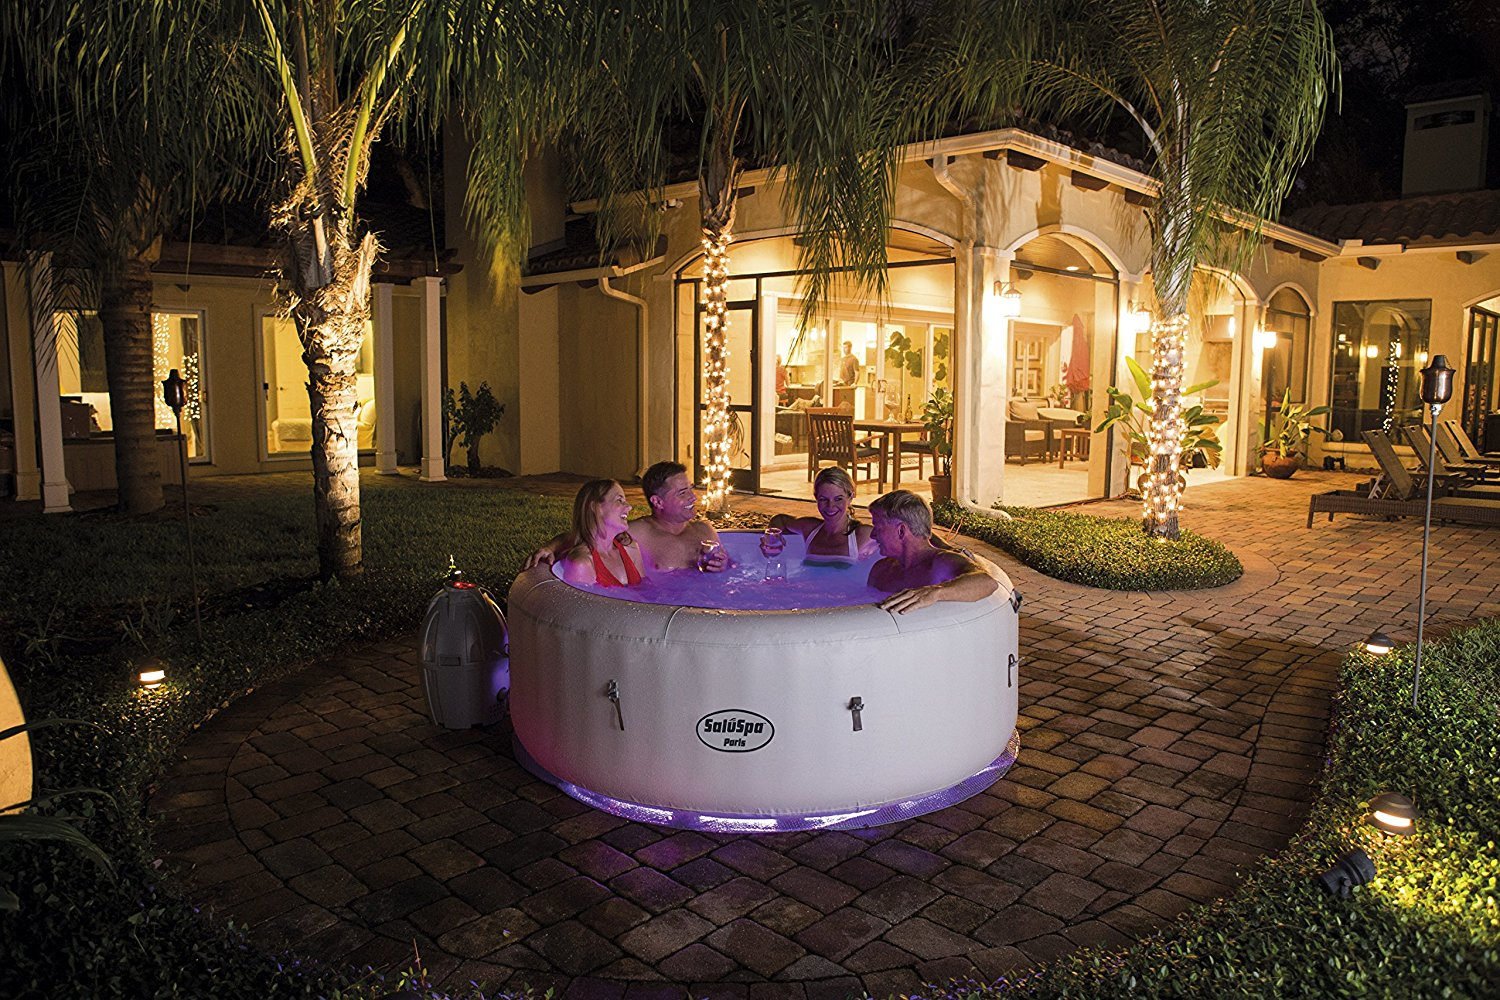 Best Home Spa Hot Tub Reviews